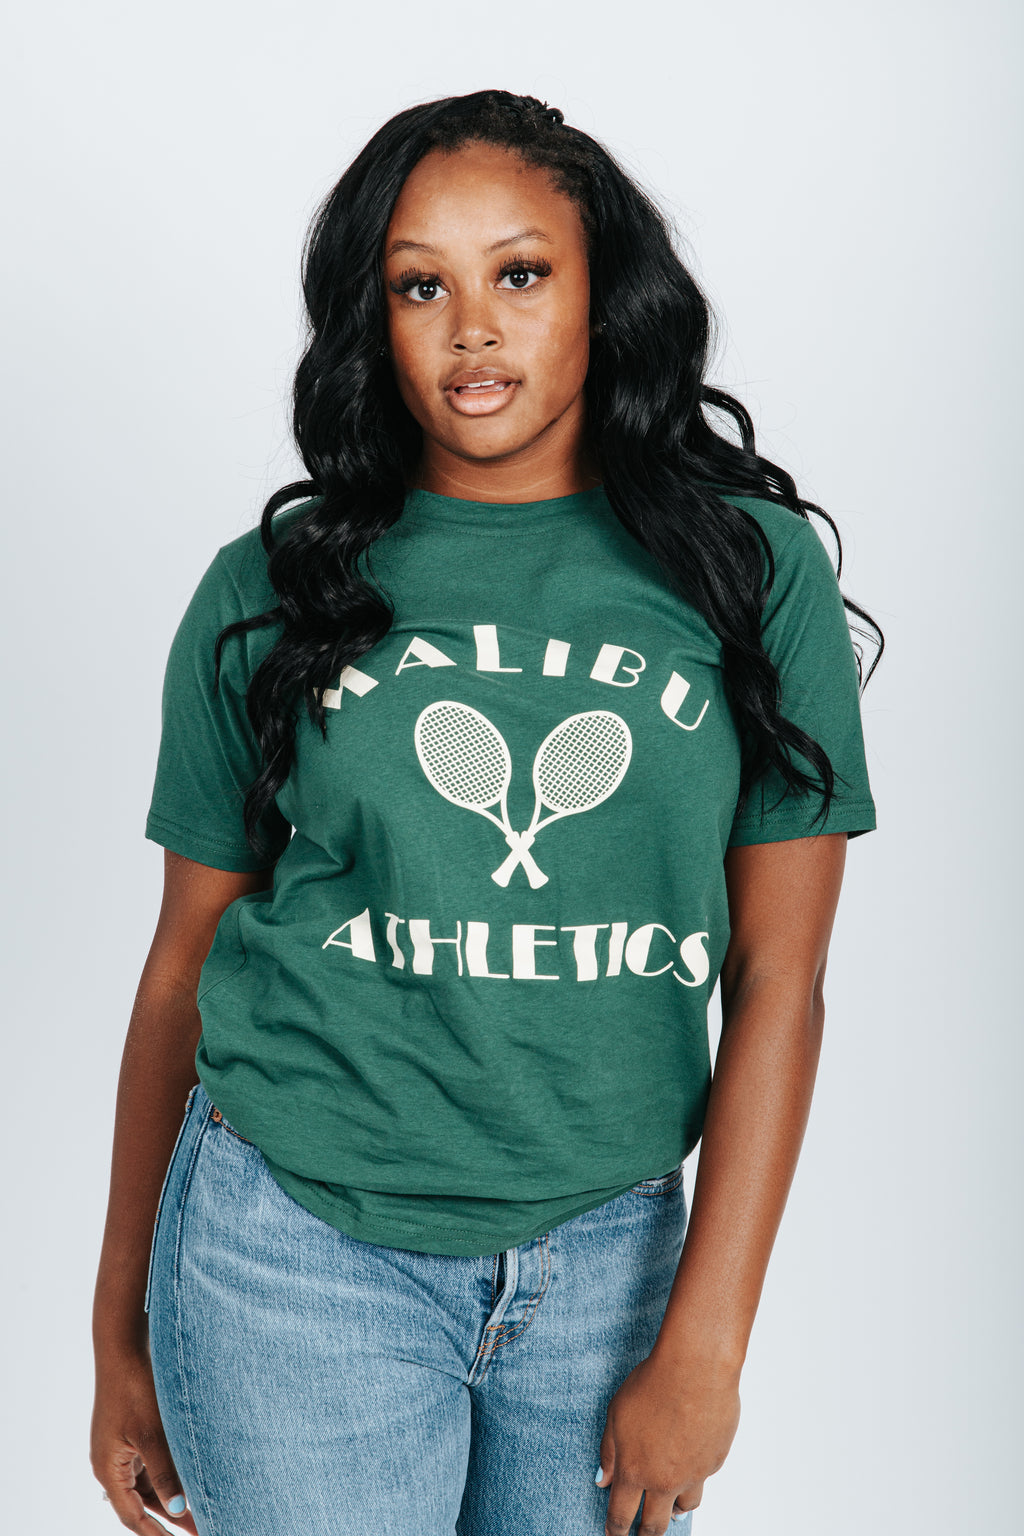 The Malibu Athletics Tee in Green